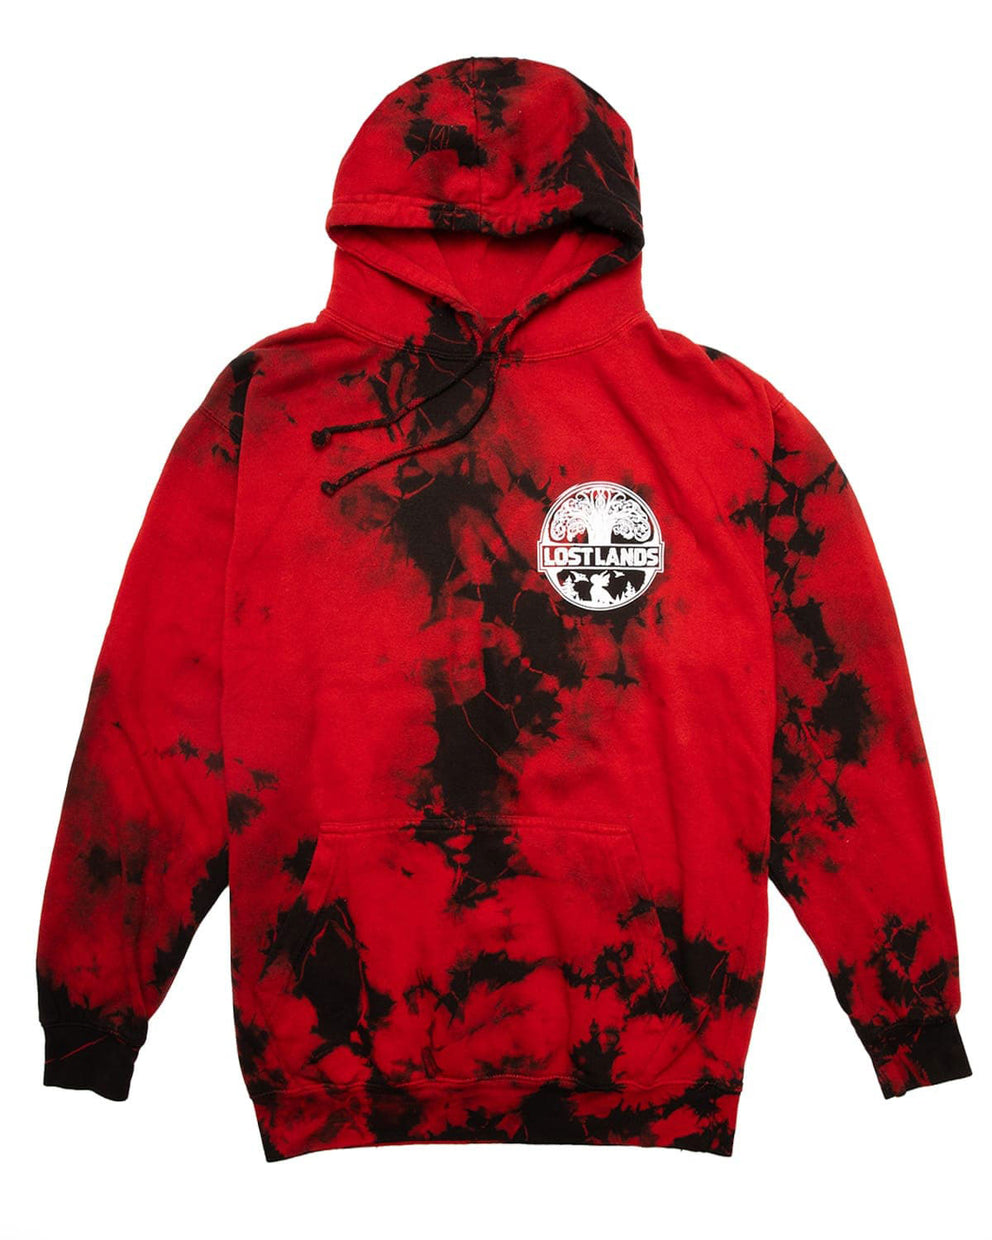 Official Lost Lands Tie Dye Pull Over Hoodie - Red